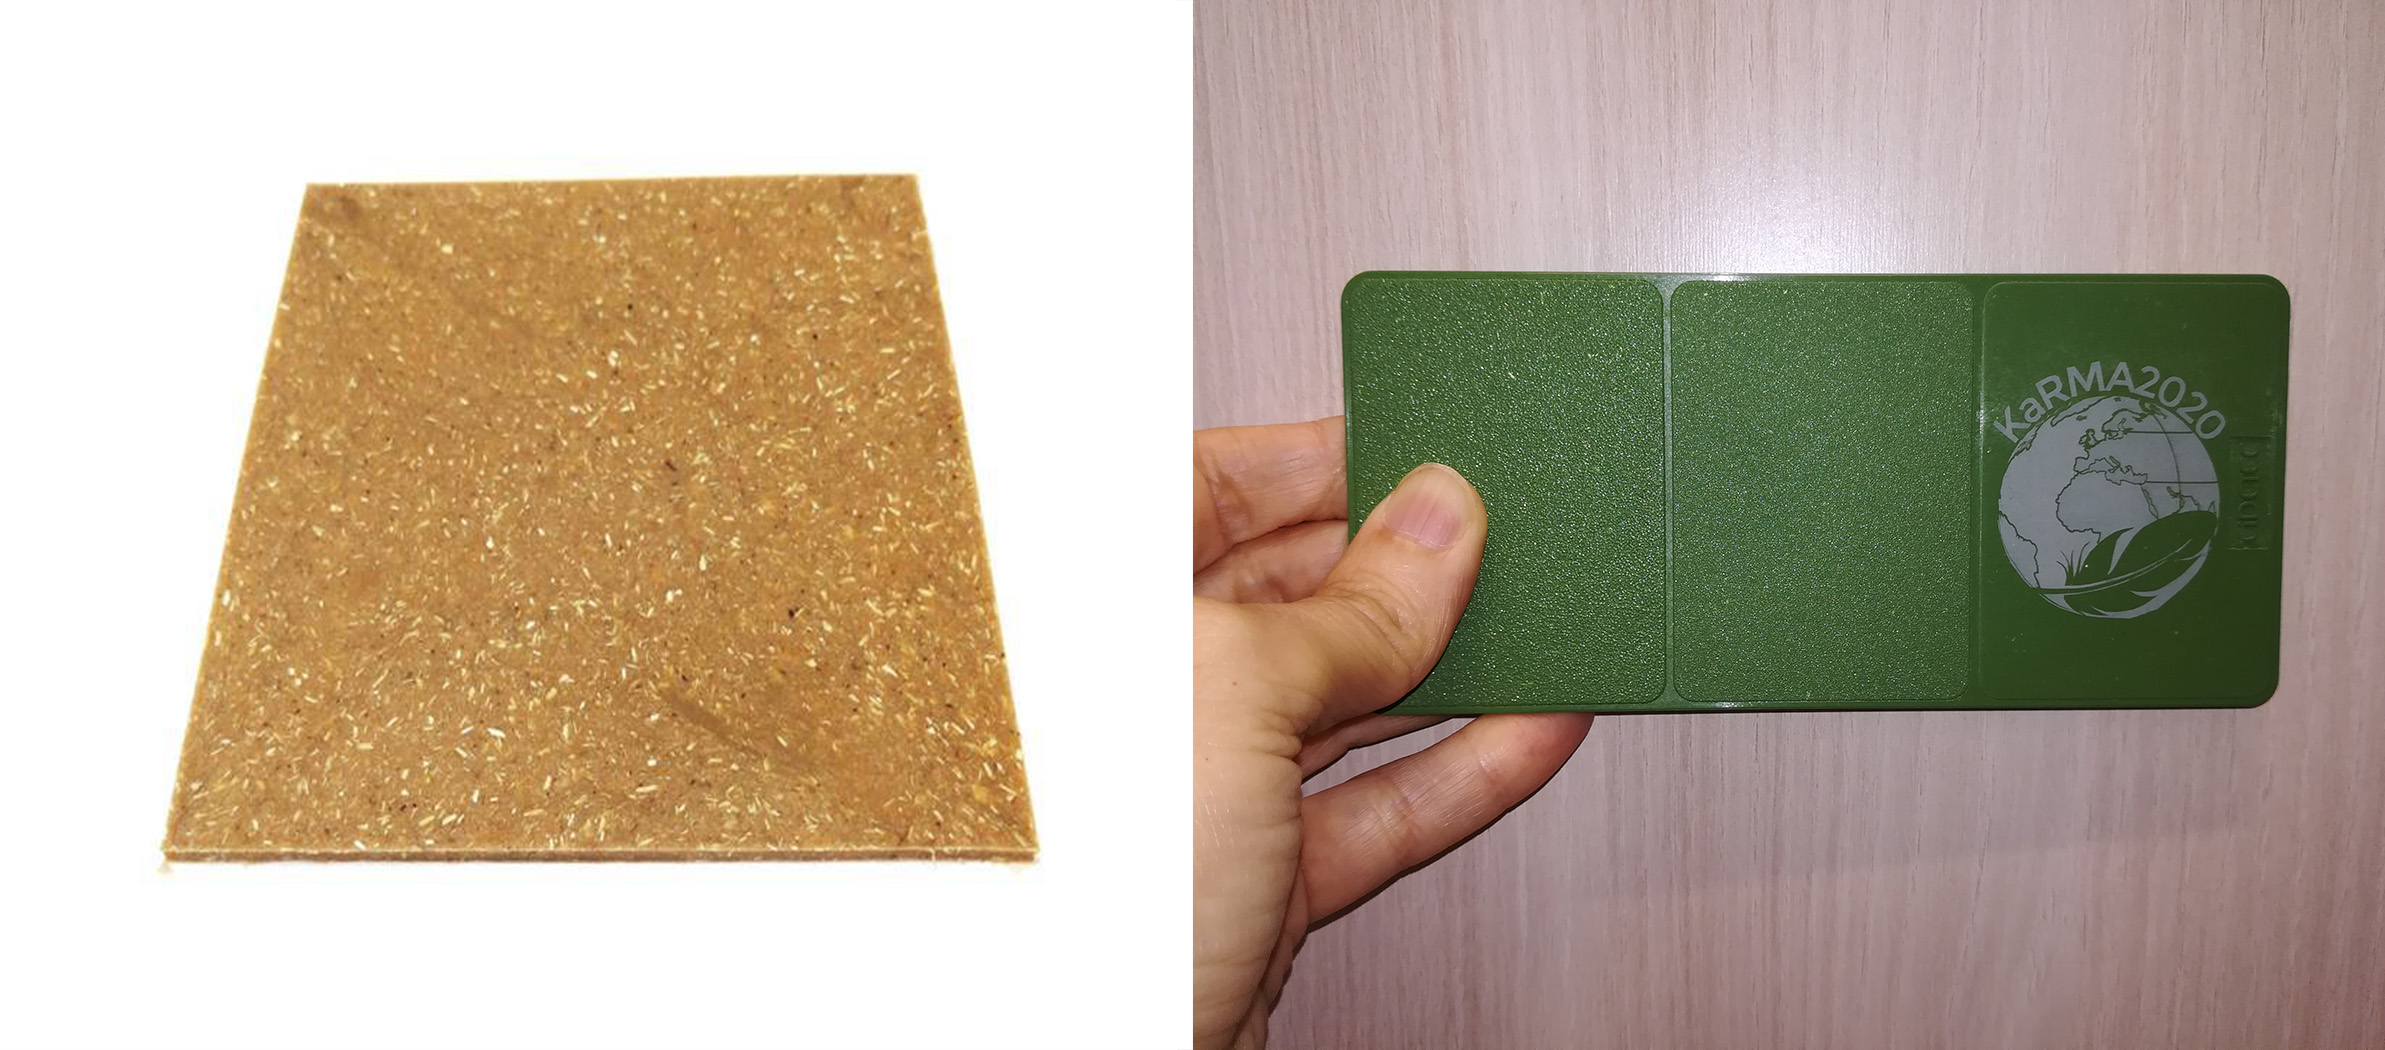 Chicken feathers can be used as raw material for composites (left) or for moulded plastic alternatives (right).